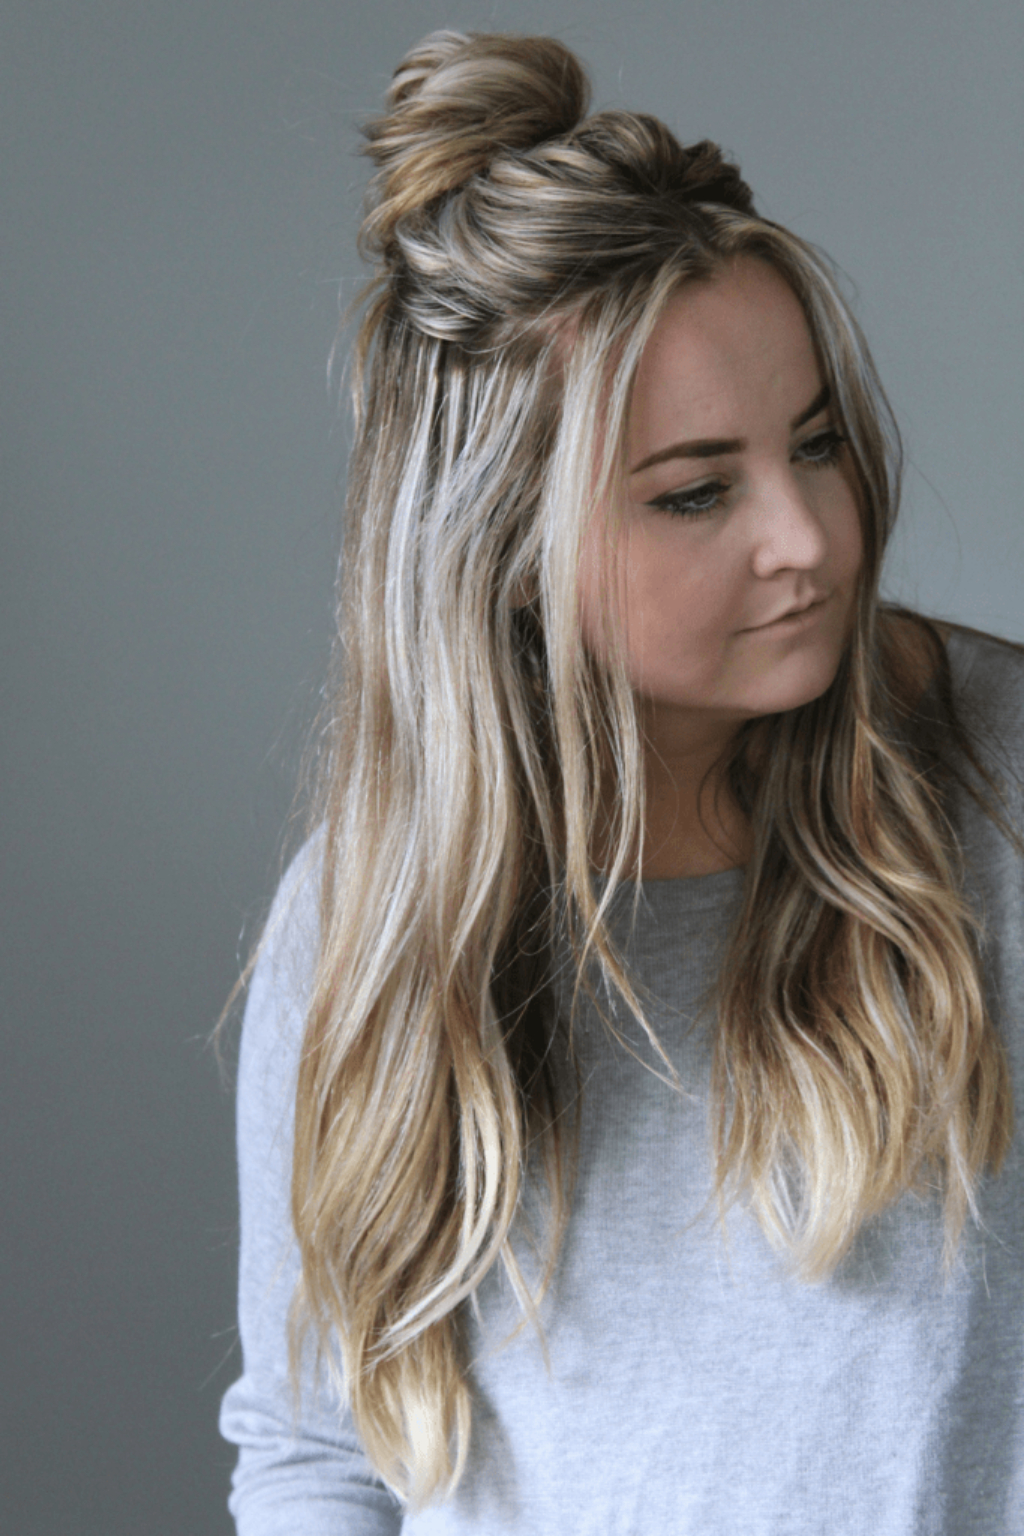 Well Liked Simple Half Bun Hairstyles Intended For Quick 2 Minute Half Up Messy Bun Tutorial – Cassie Scroggins (View 12 of 20)